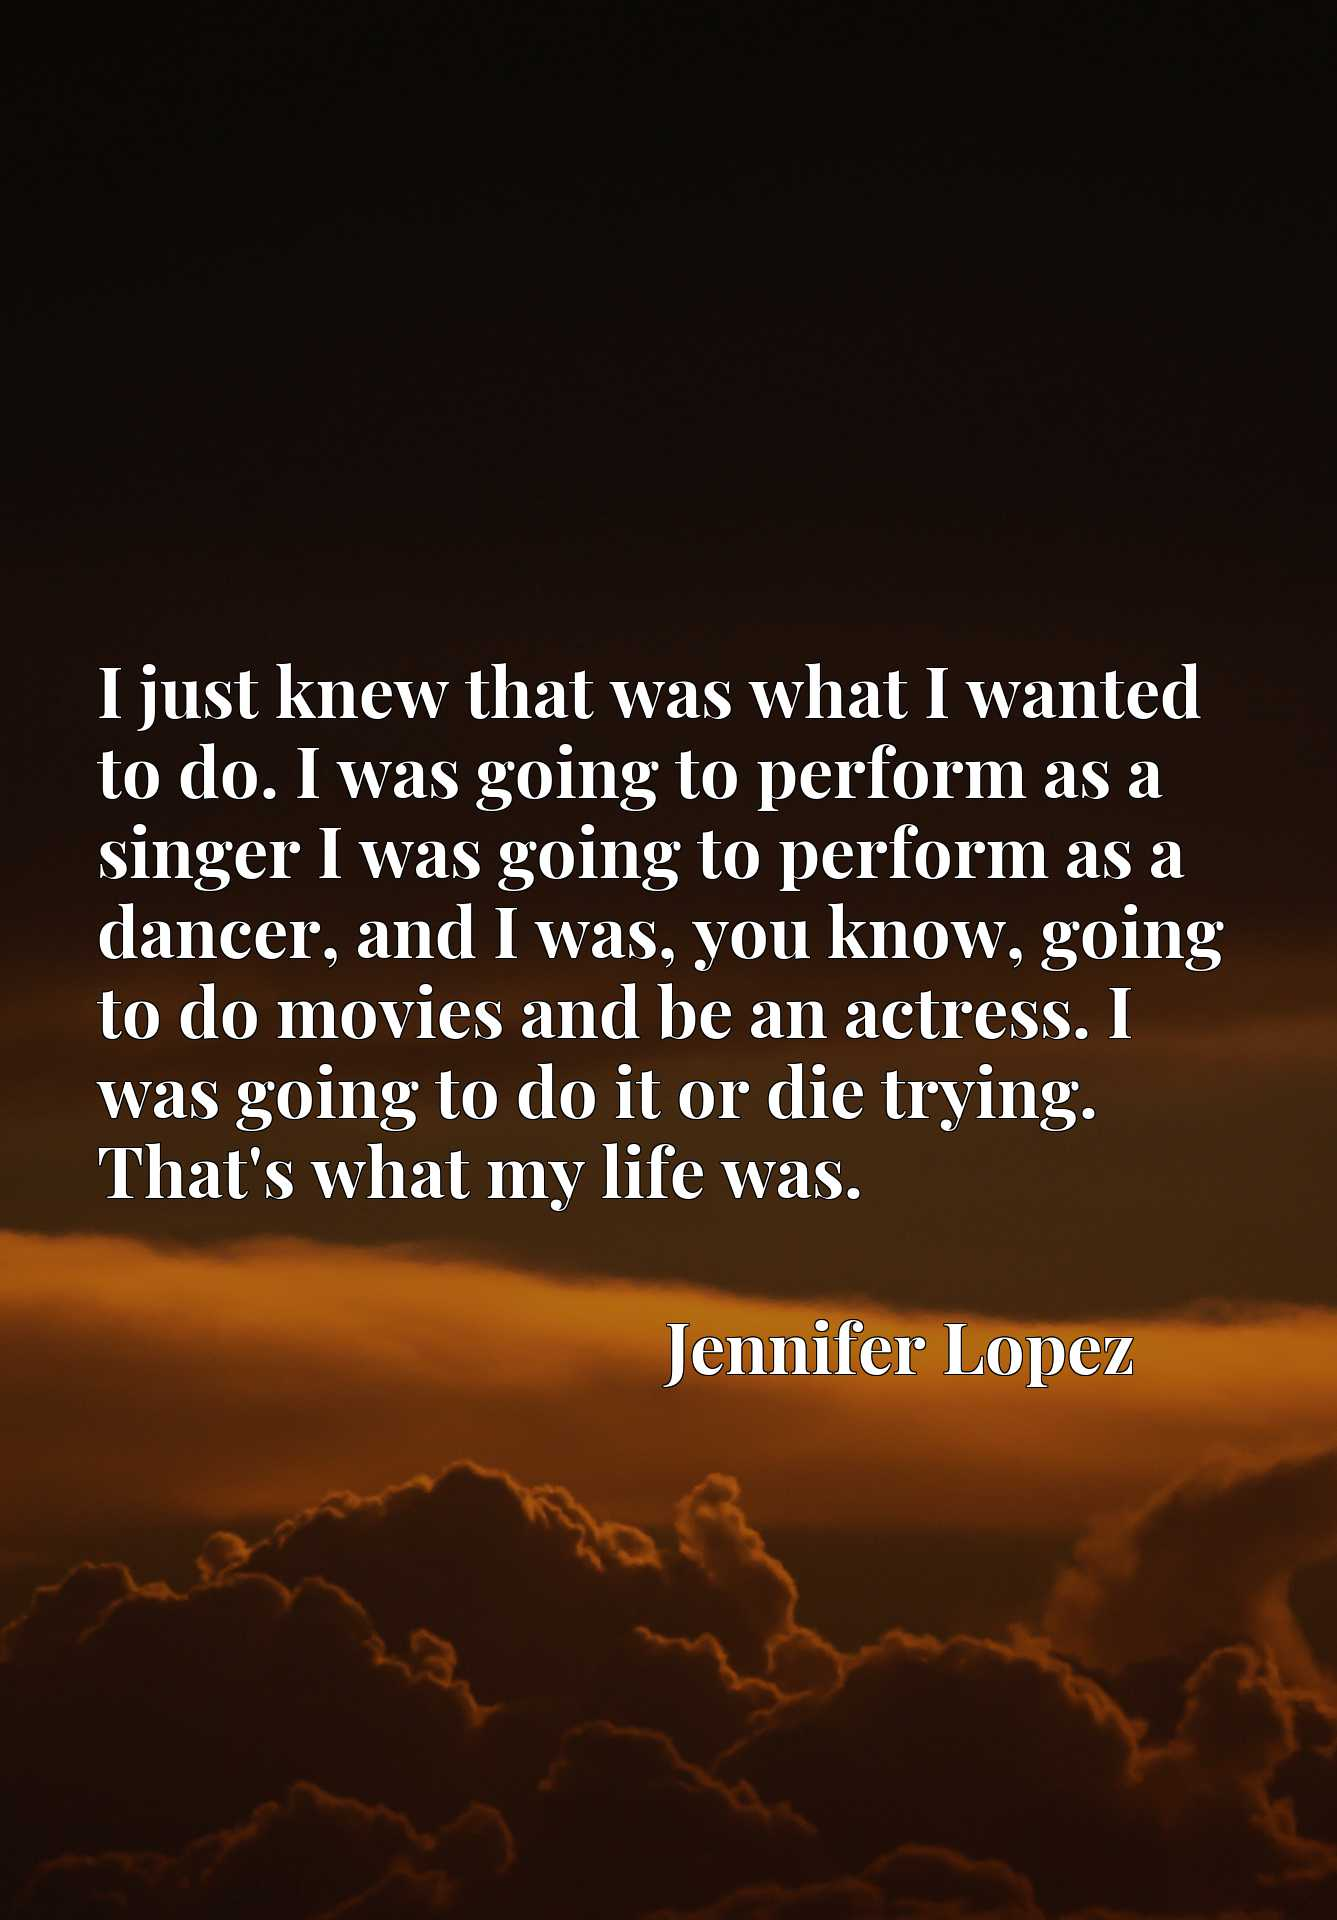 I just knew that was what I wanted to do. I was going to perform as a singer I was going to perform as a dancer, and I was, you know, going to do movies and be an actress. I was going to do it or die trying. That's what my life was.